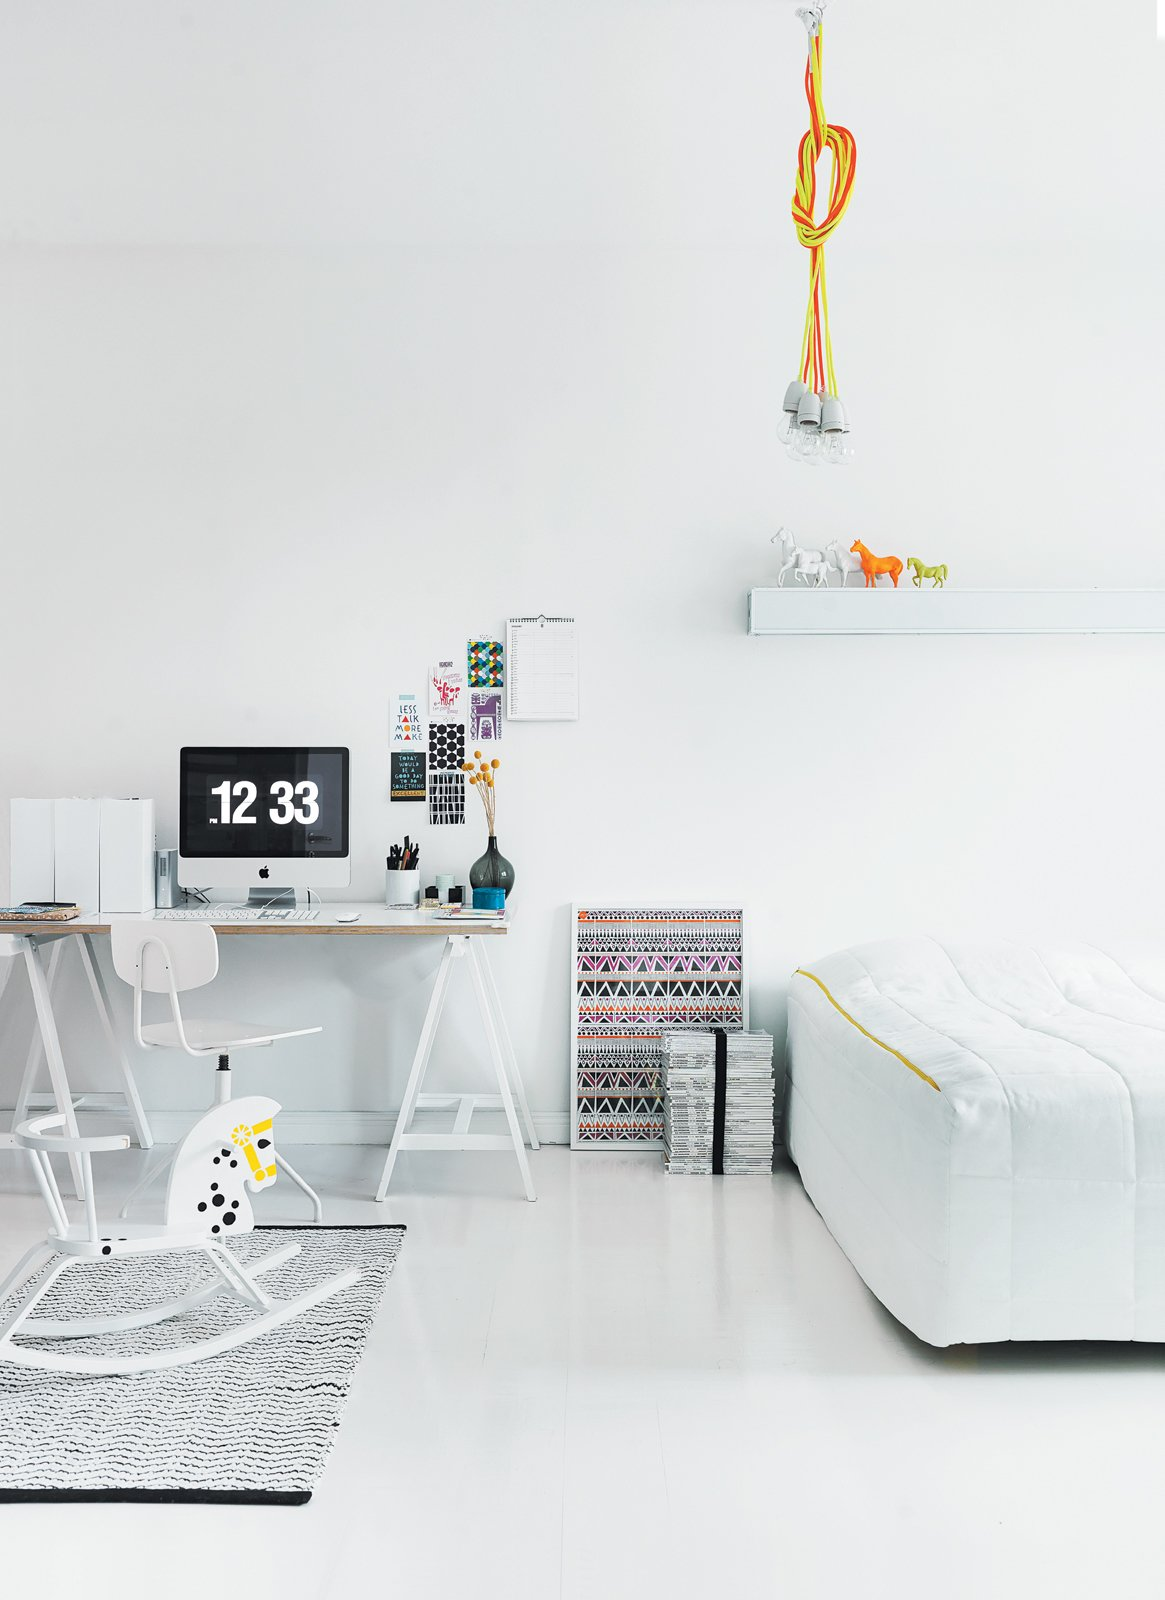 #interior #design #interiordesign #masterbedroom #couchbed #ikea #ikeadesk #rockingchair #rockinghorse #modern #budget #susannavento #jussivento #helsinki #apartment #cozy #quirky #whiteinterior #white #palette #blackaccents #neon #glow #trestledesk #desk #huuto #homeoffice #lighting #chordlights #chordpendantlight